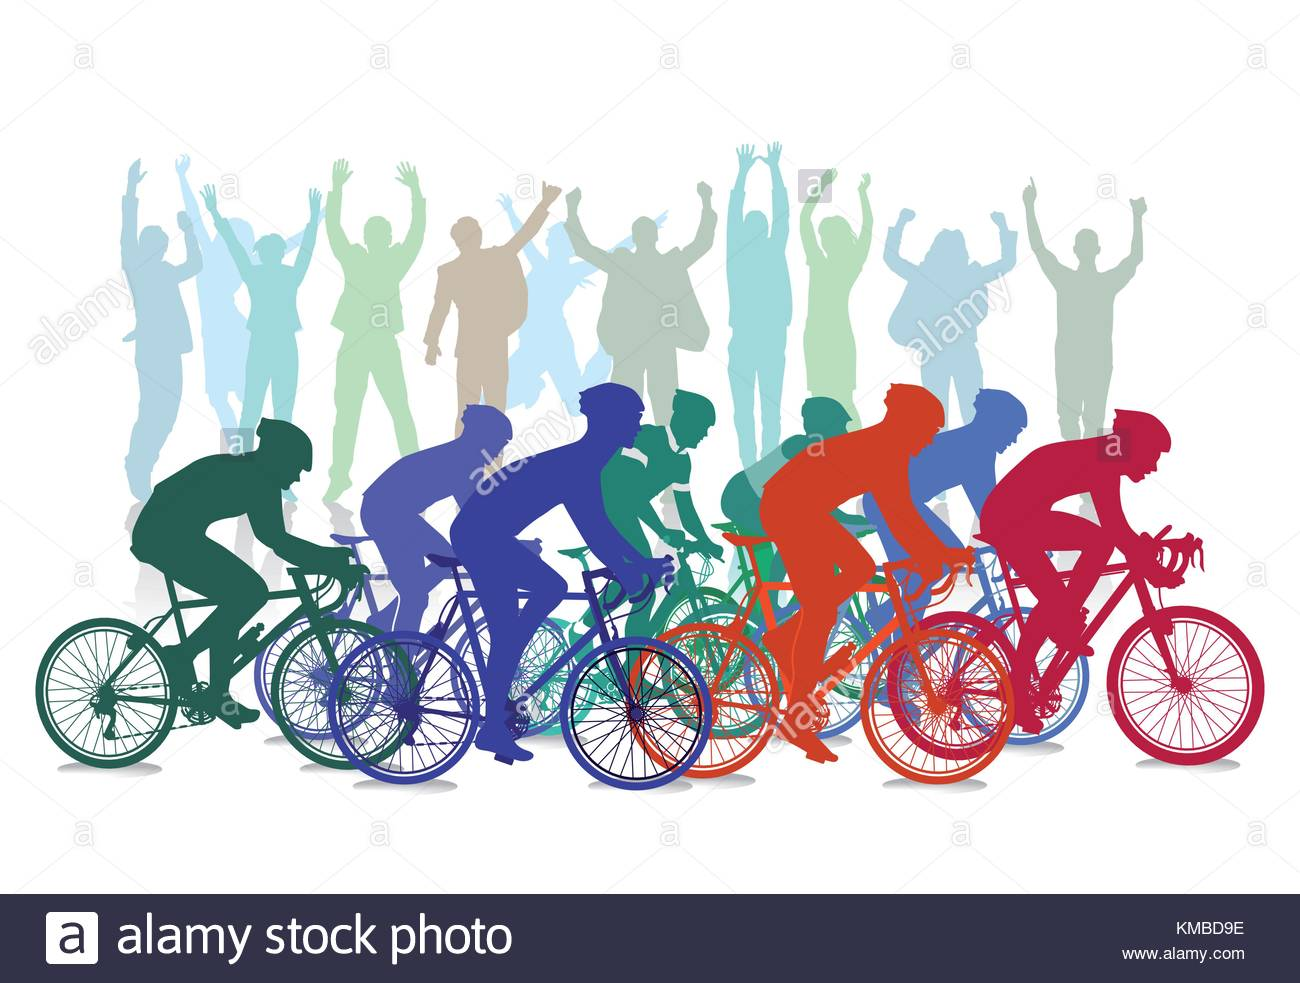 Cycling clipart cycling competition. Cycle race with spectators image royalty free library